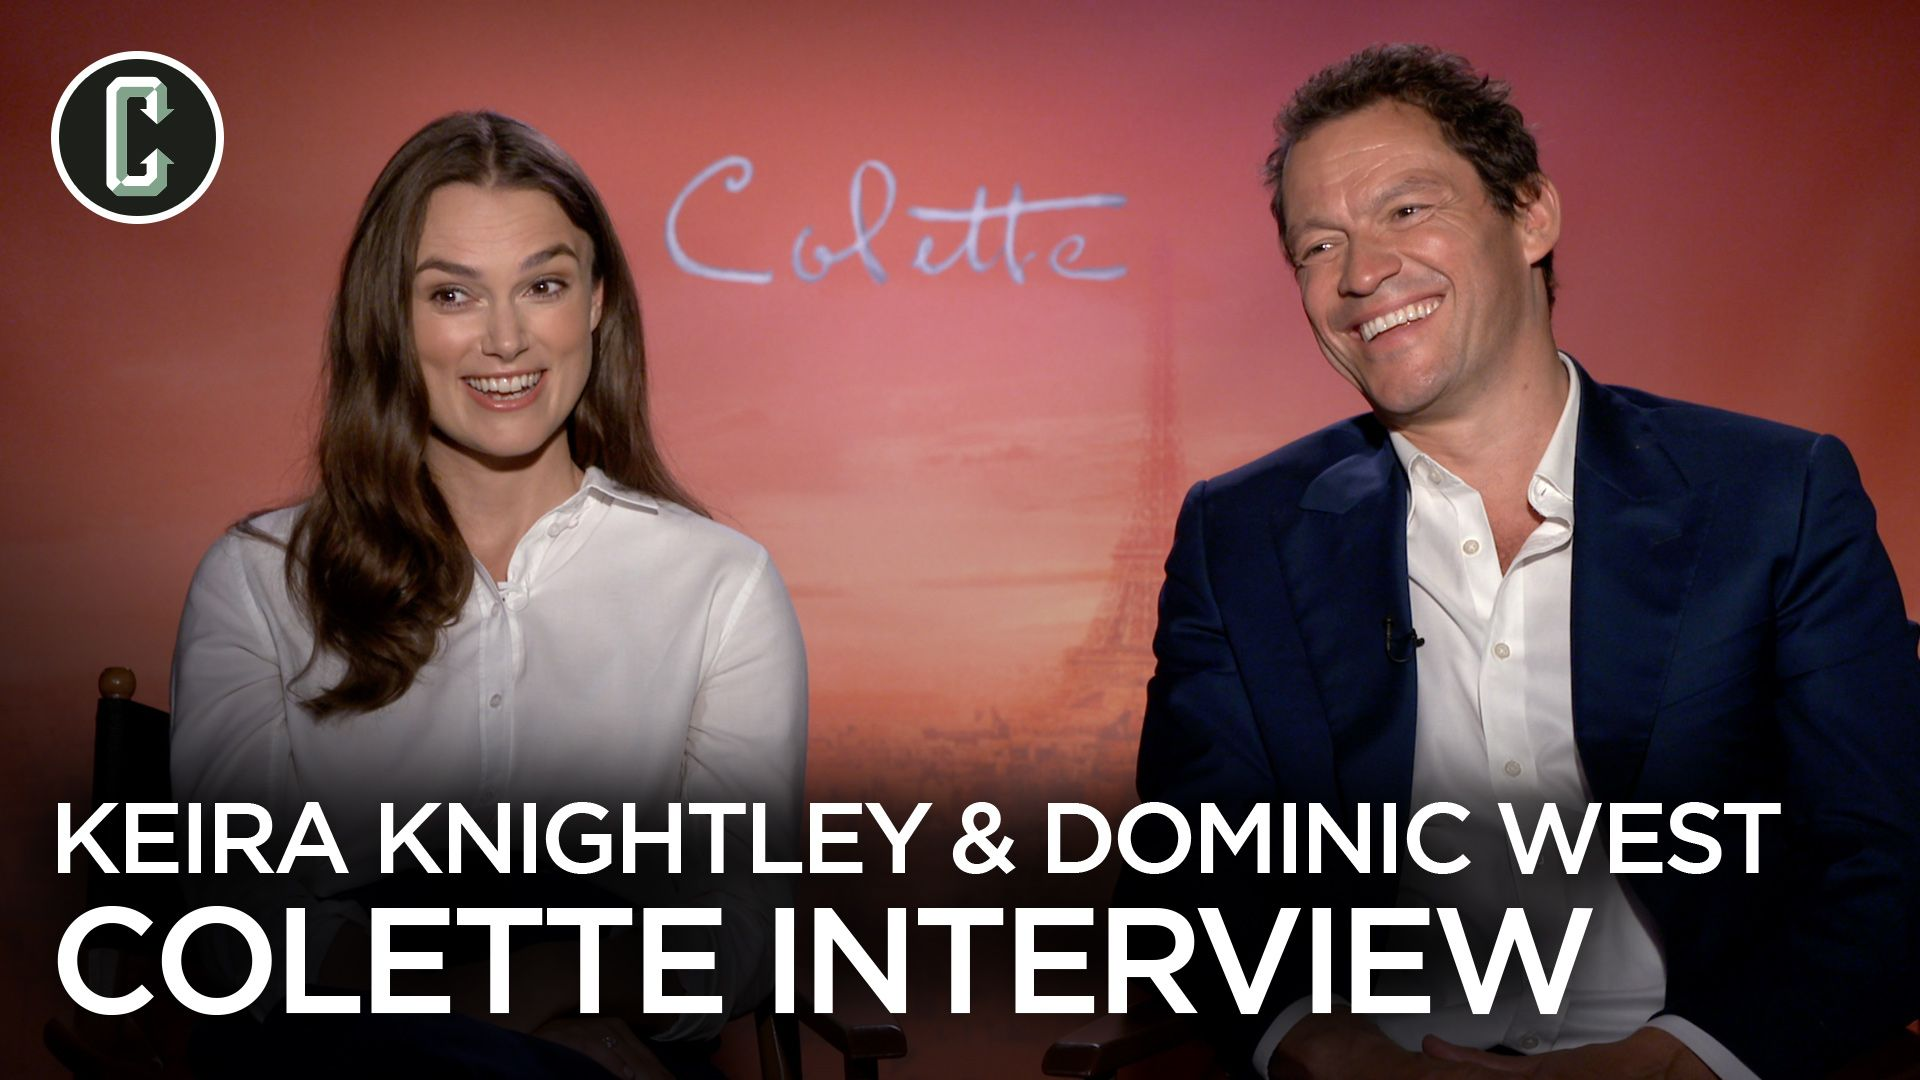 Keira Knightley And Dominic West On The Cool Hero Of Colette